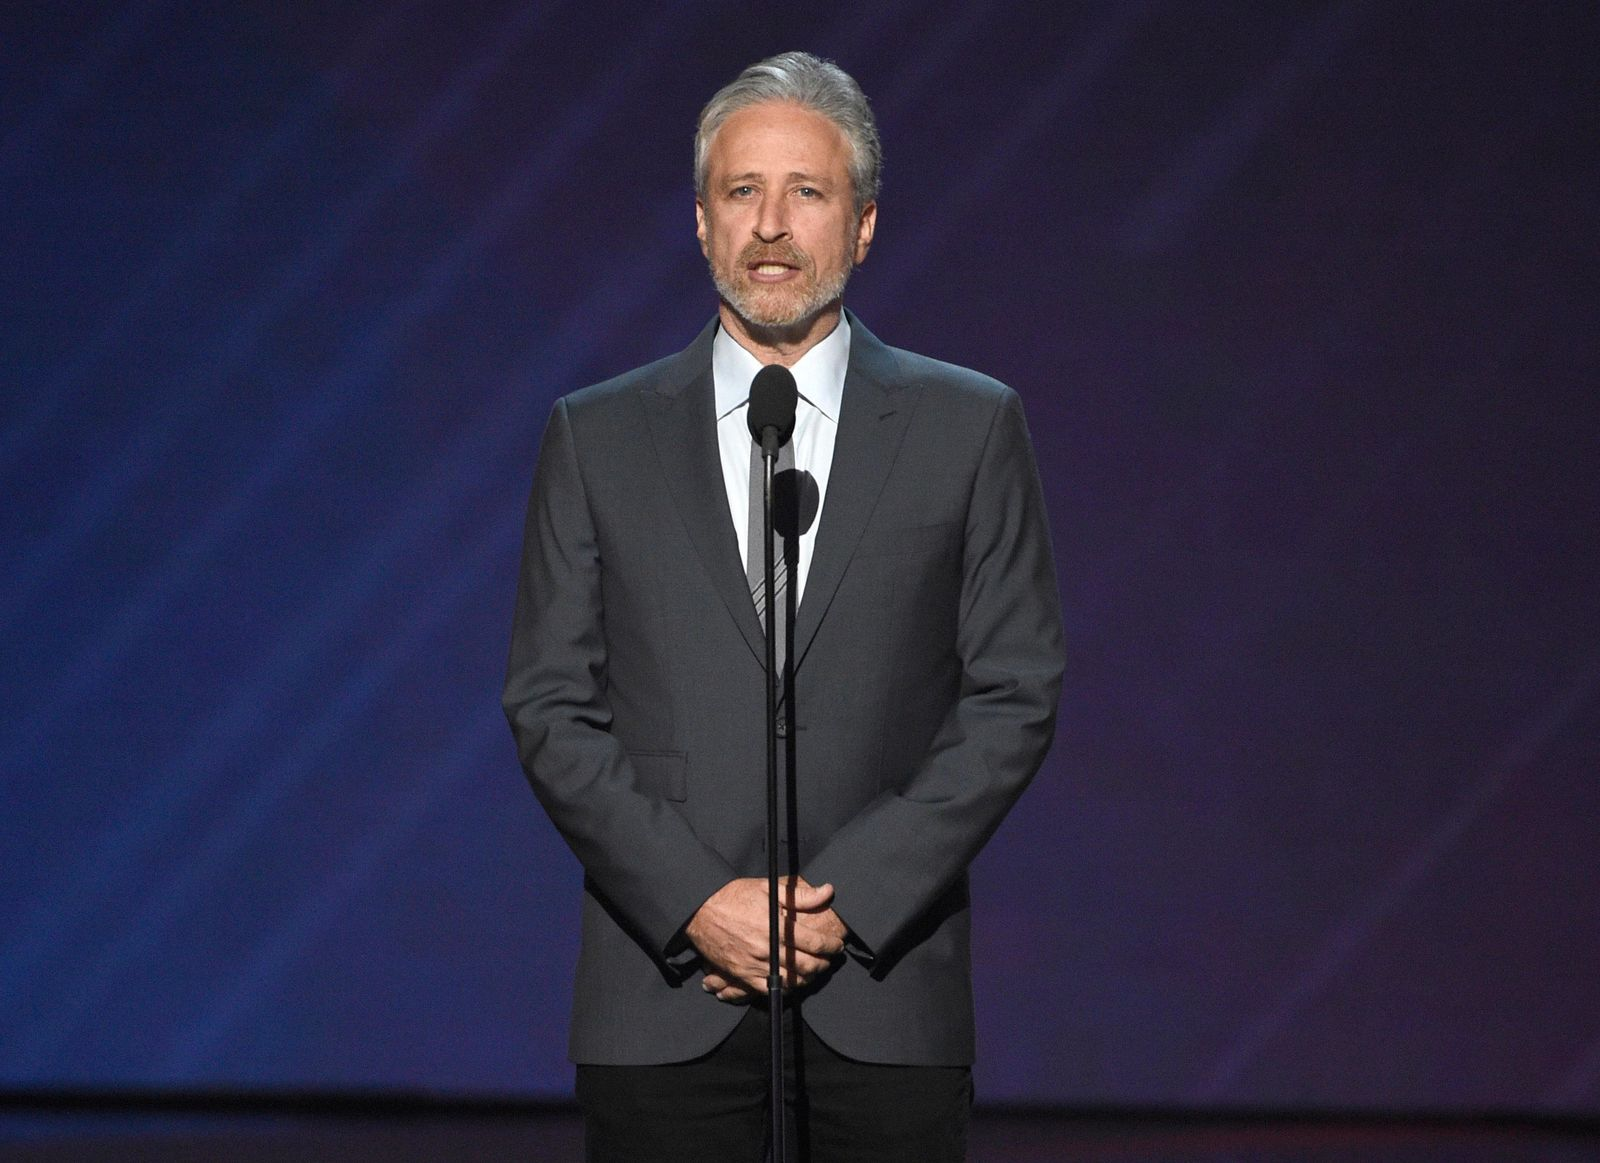 FILE- In this July 12, 2017, file photo, Jon Stewart presents the Pat Tillman award for service at the ESPYS at the Microsoft Theater in Los Angeles. (Photo by Chris Pizzello/Invision/AP, File)